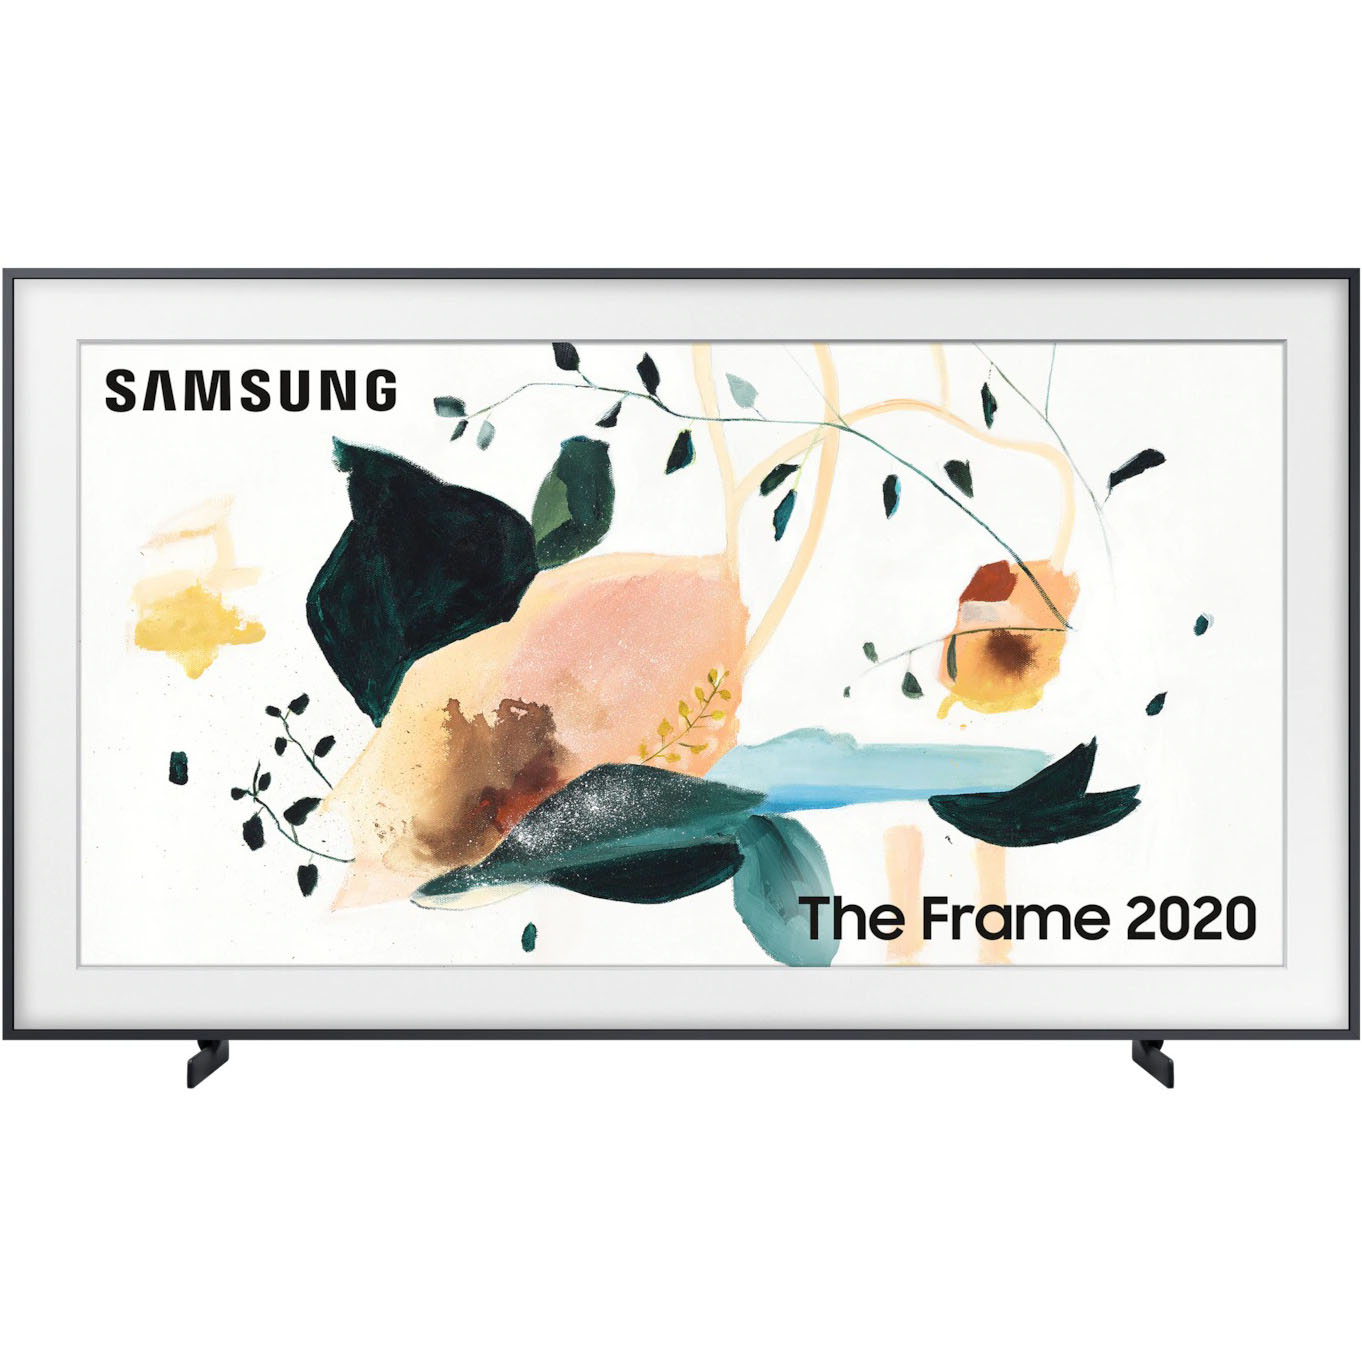 Фото - Телевизор Samsung The Frame TV 2020 QE43LS03TAUXRU the frame телевизор samsung qe32ls03tbkxru